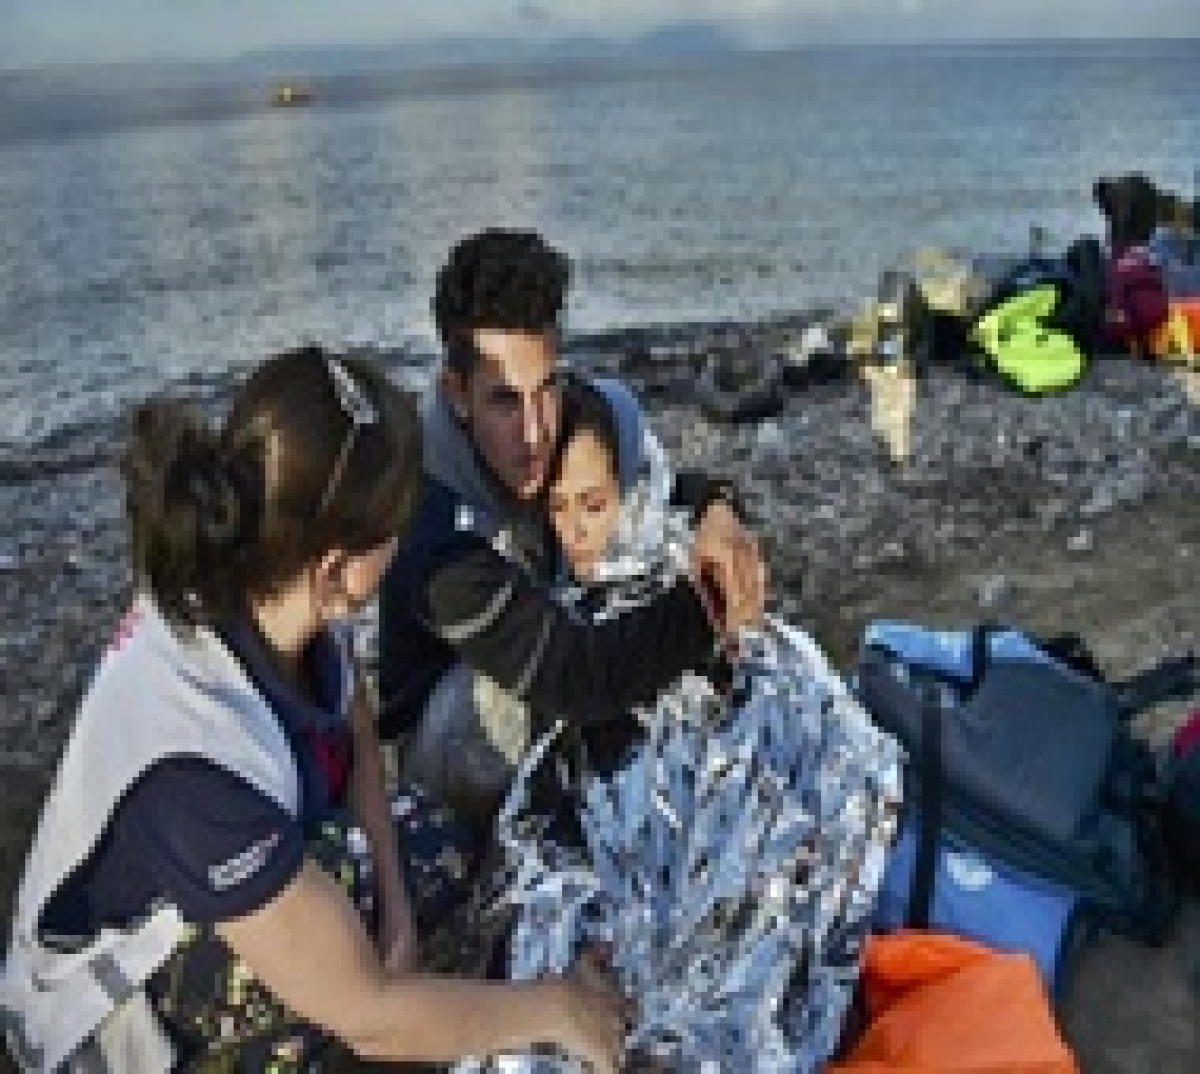 27 refugees saved from drifting boat off Cyprus